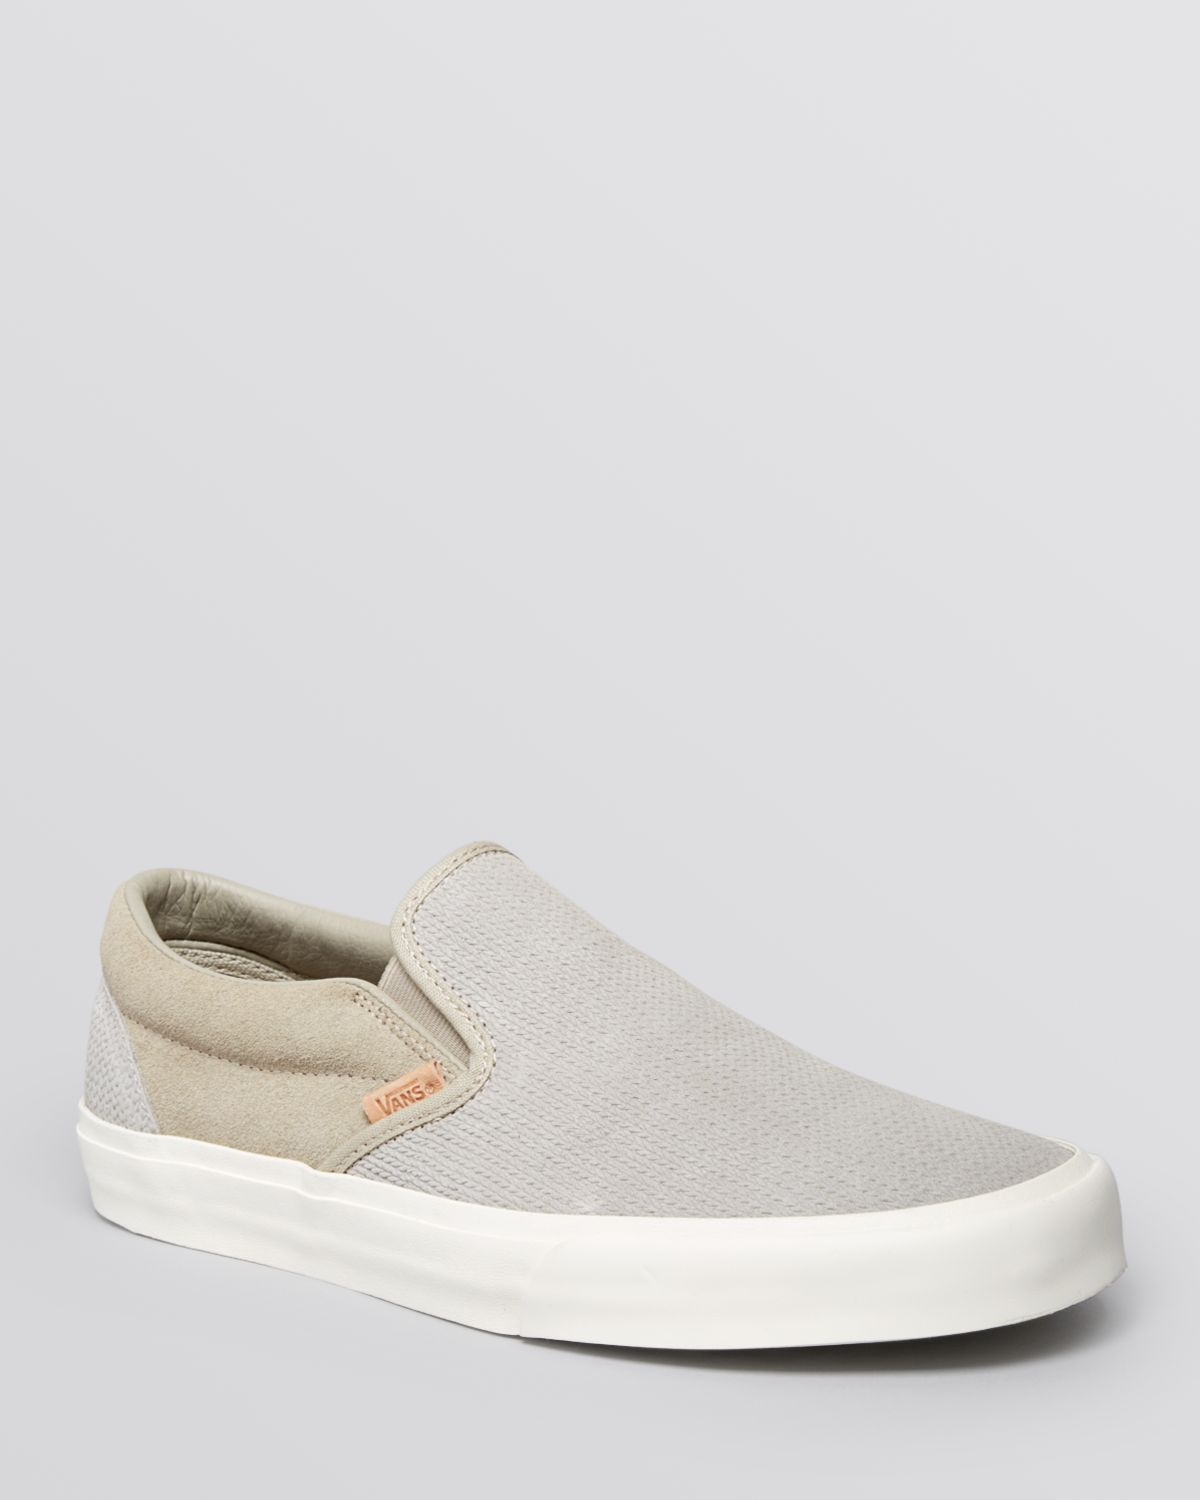 8e0b669cb18 Lyst - Vans Classic Ca Knit Suede Slip On Sneakers in Gray for Men